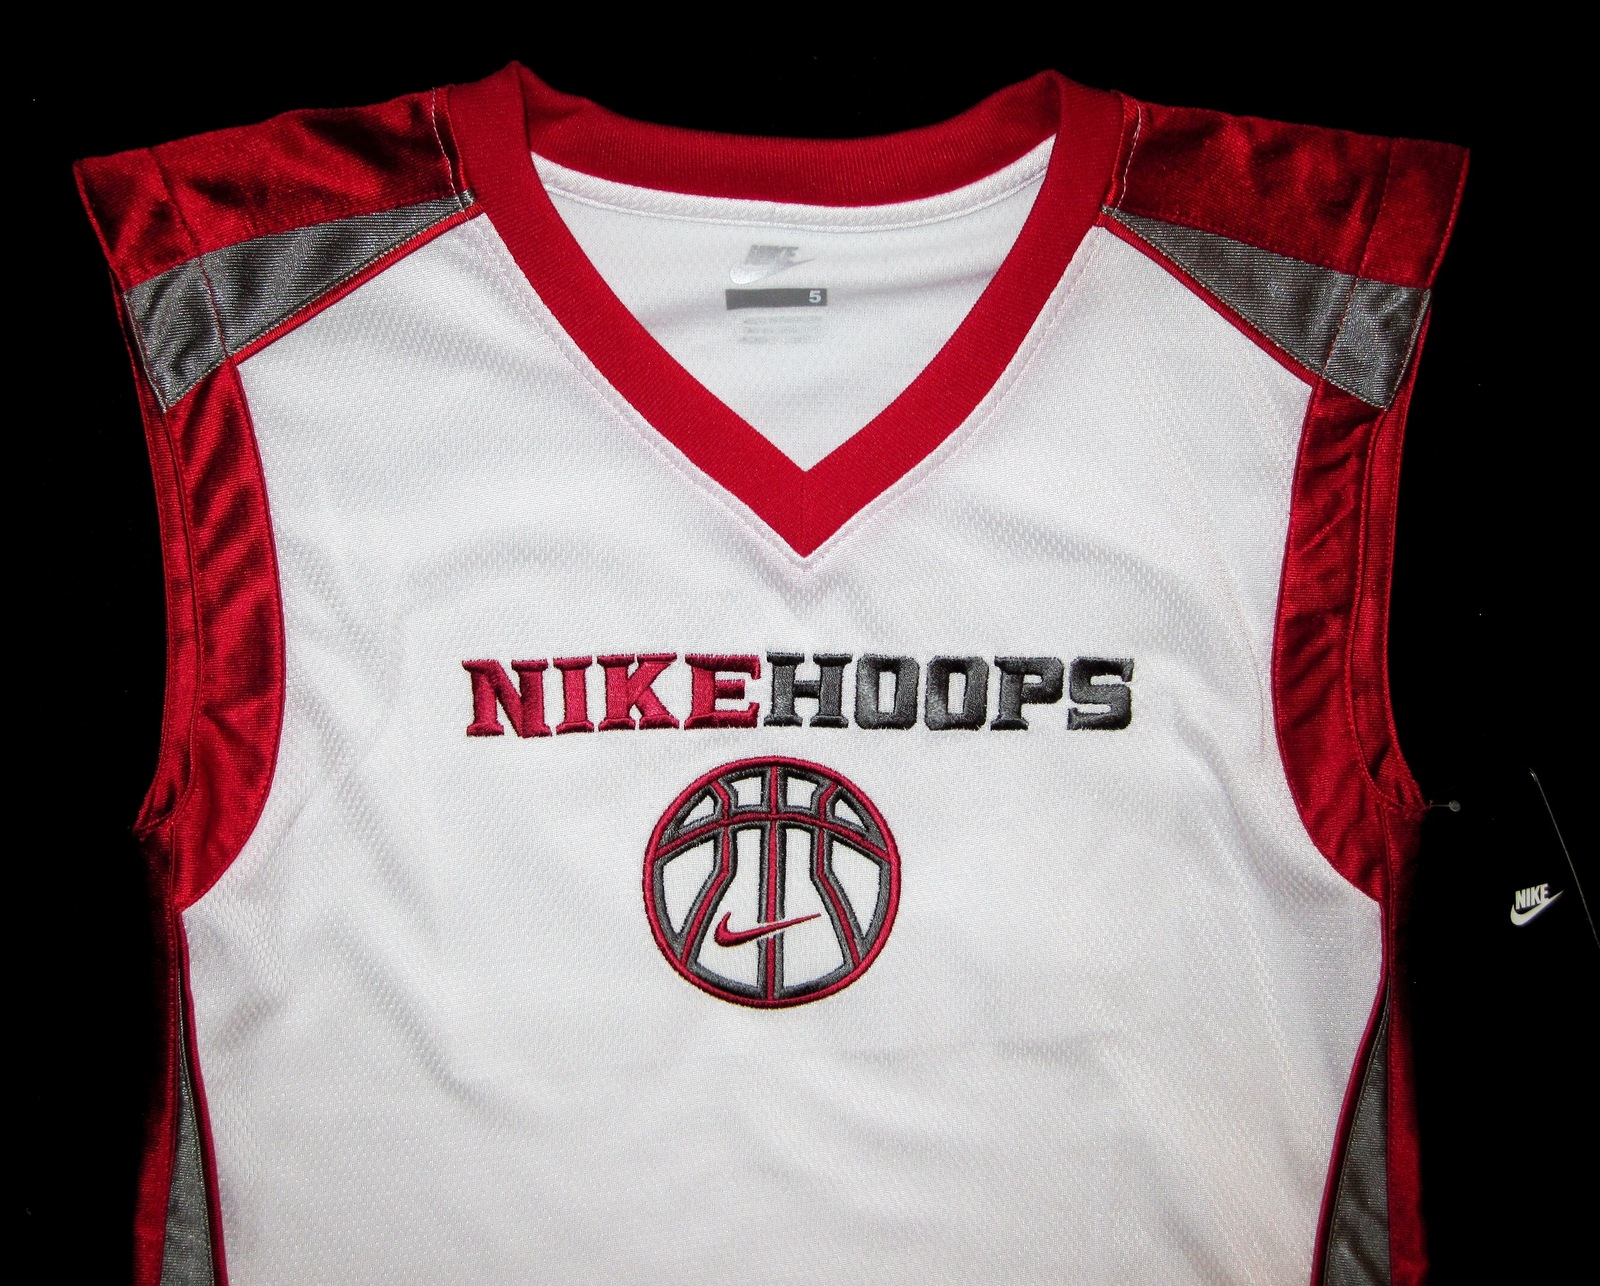 BOYS 6 - Nike Hoops - White-Red-Gray BASKETBALL SPORTS JERSEY image 5